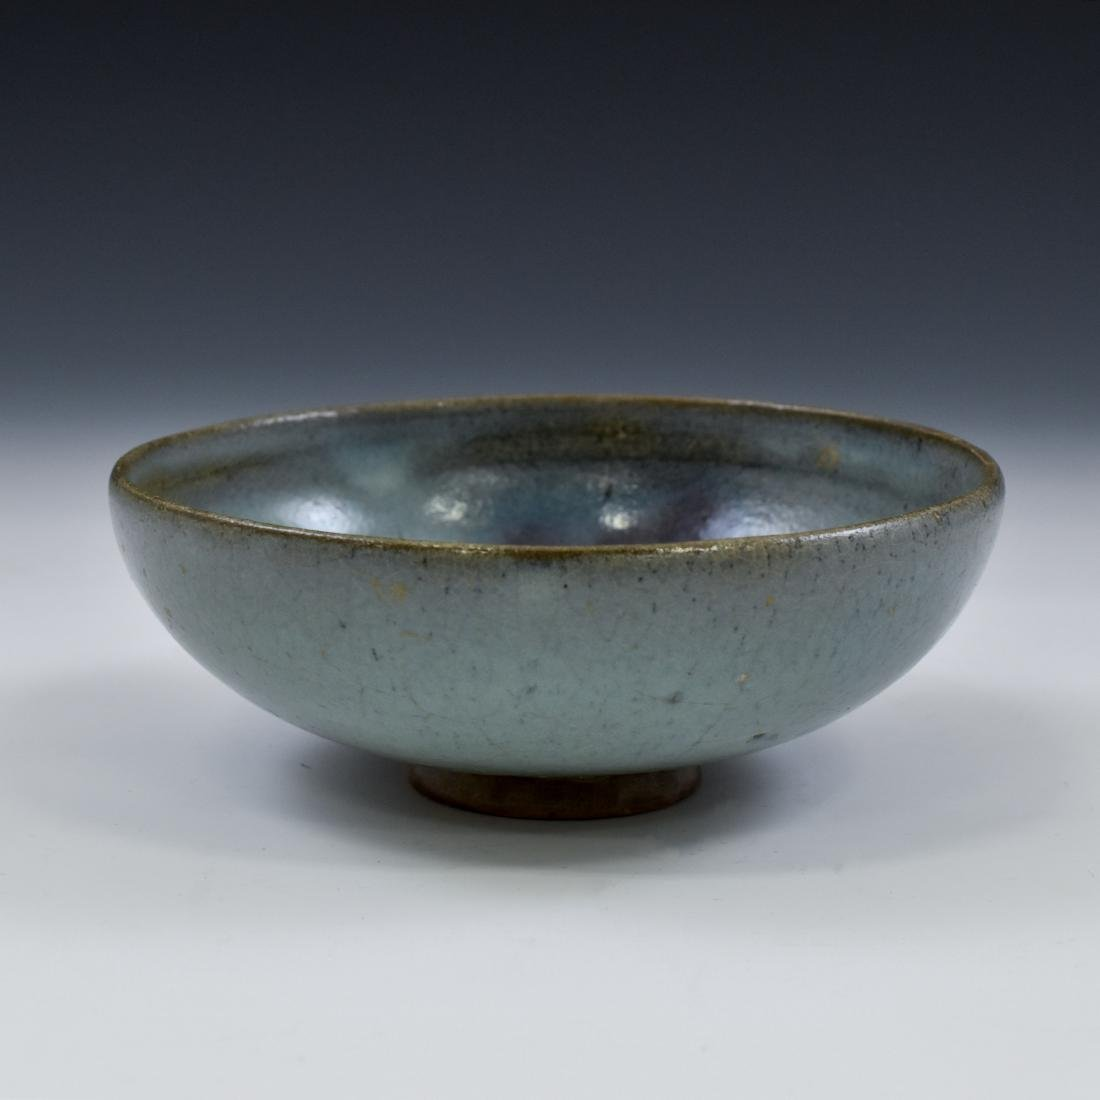 YUAN DYNASTY JUN WARE TEA BOWL - 2